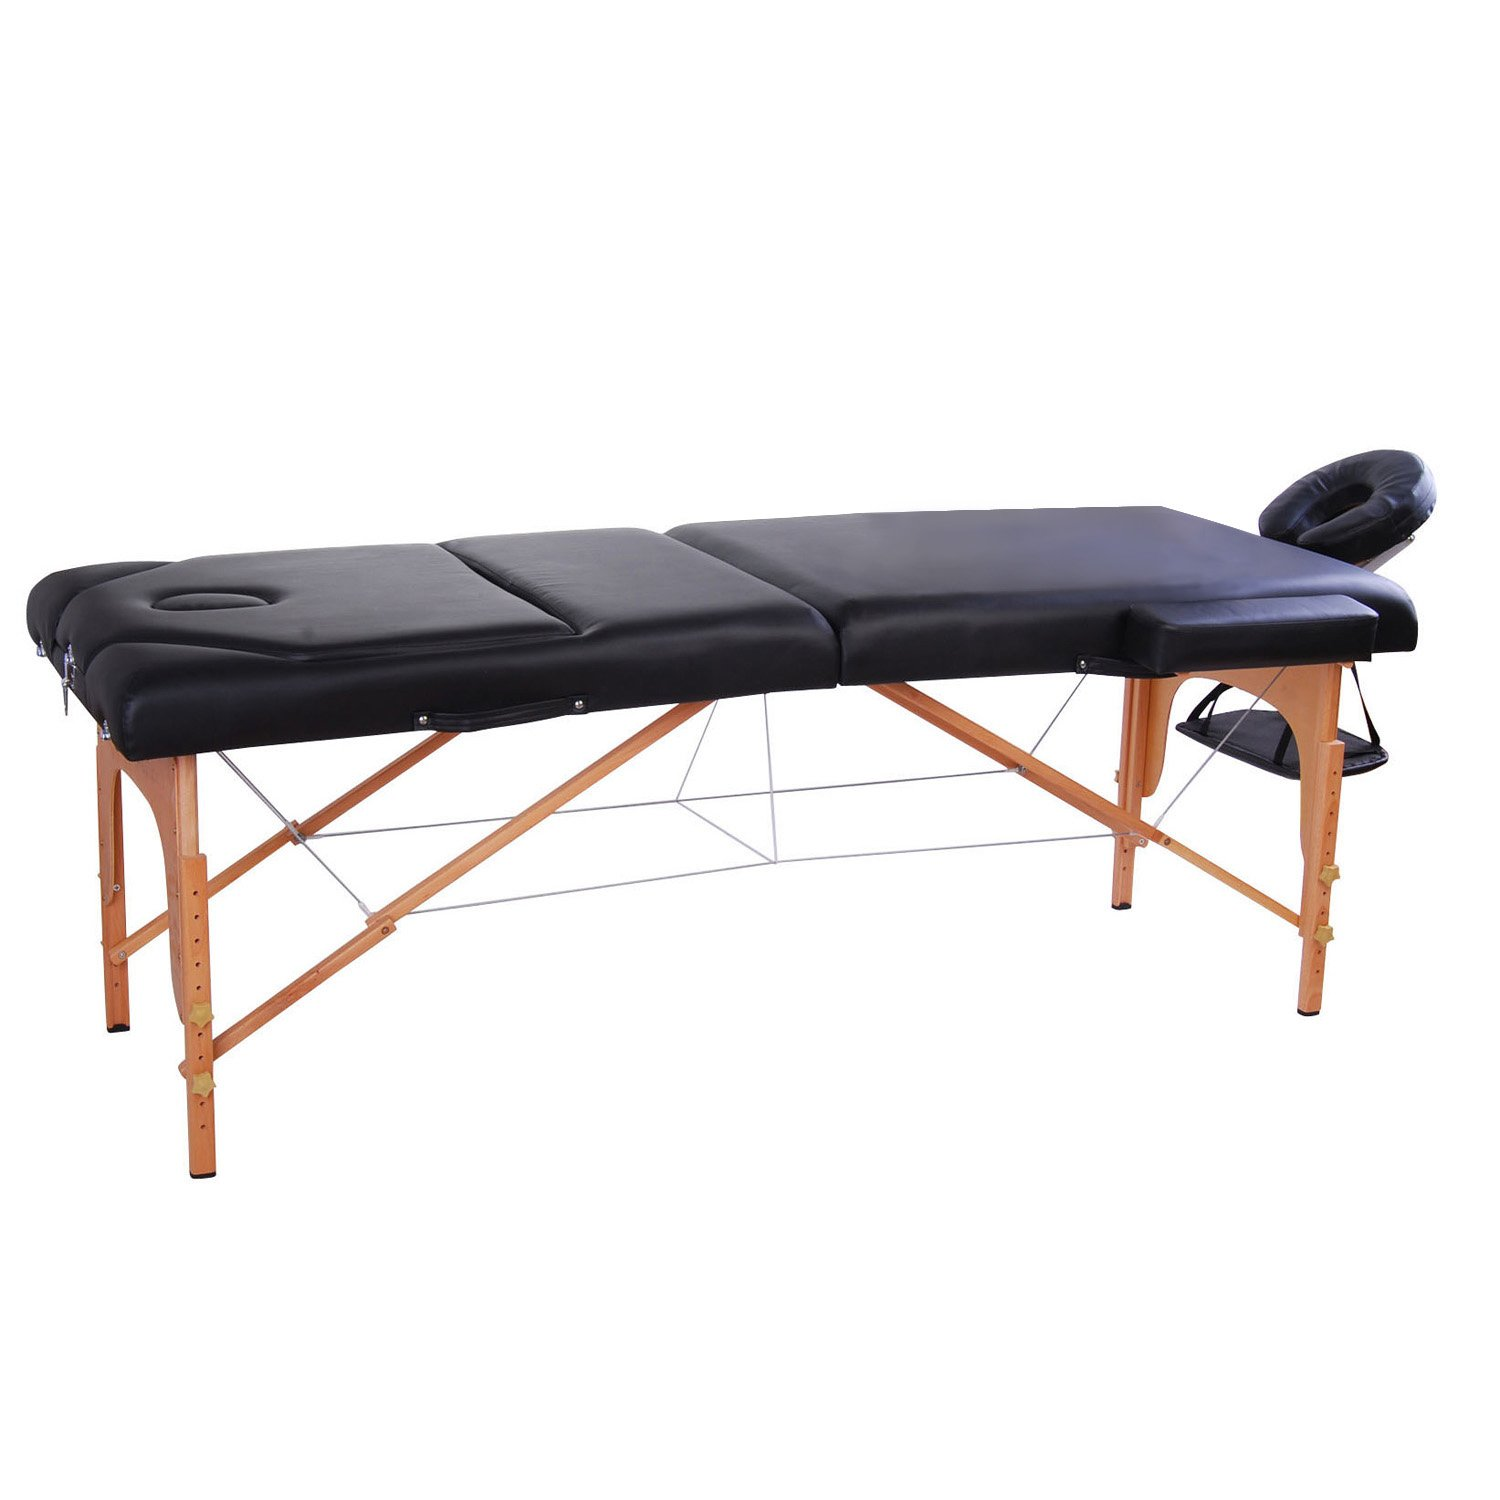 "Soozier 91"" 3 Section 4"" Pad Foldable Massage Table Spa Facial Couch Bed w/ Carry Case Black Aosom Canada 5550-3076BK"